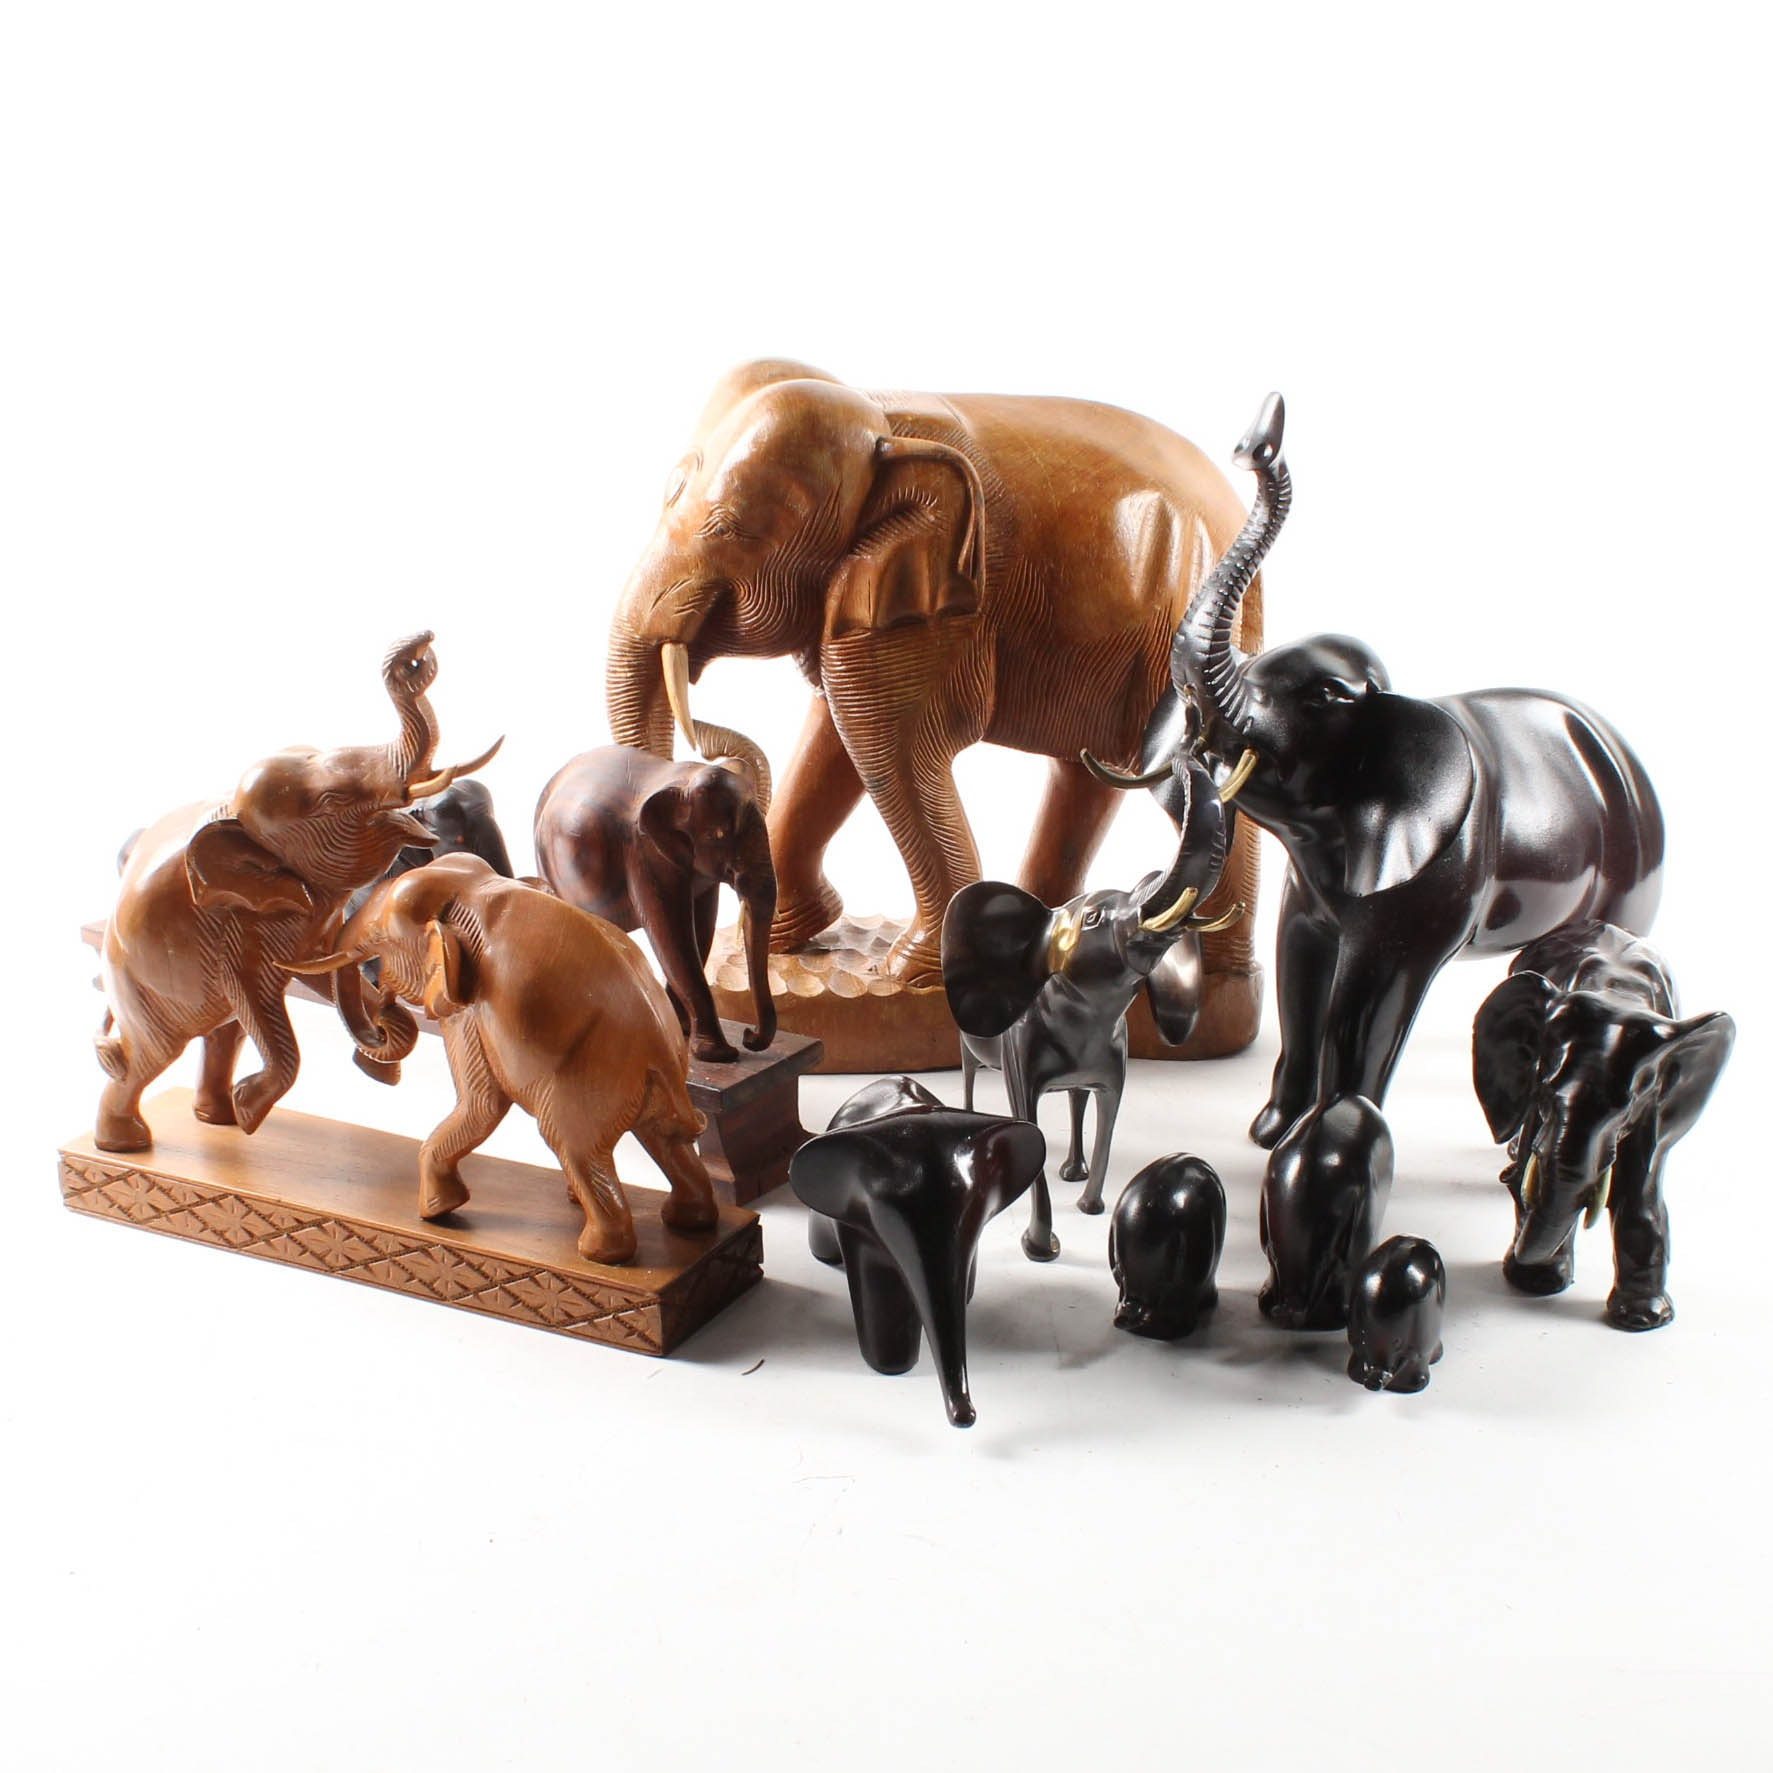 Metal and Carved Wood Sculptures of Elephants